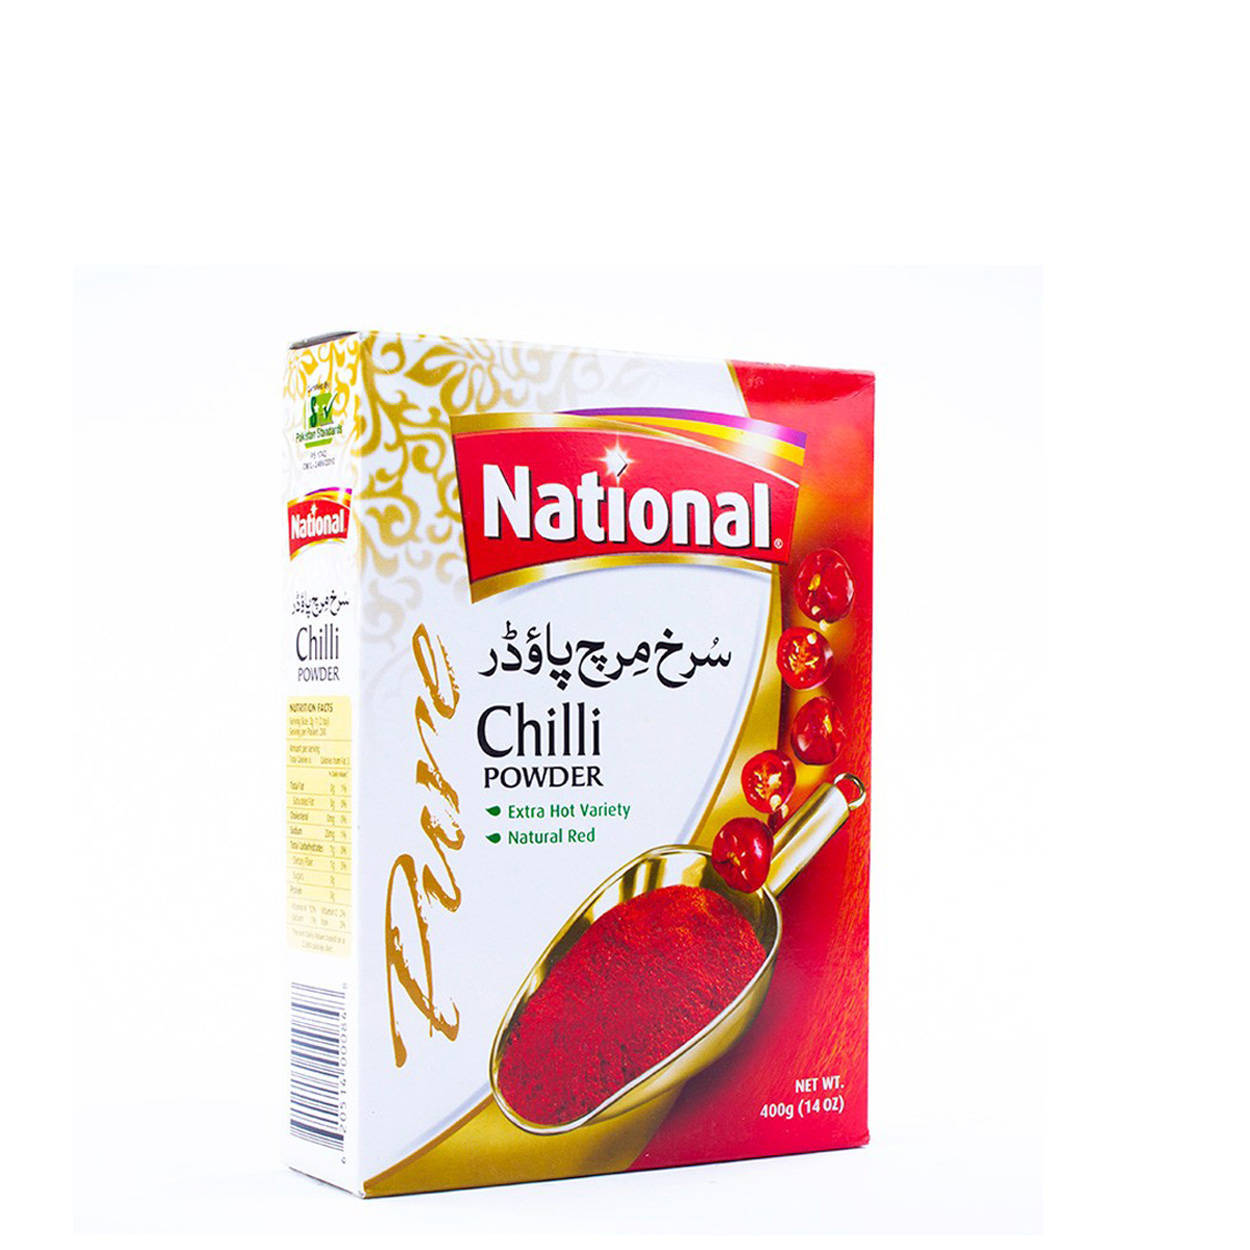 National Red Chilli Powder Spices 100gm